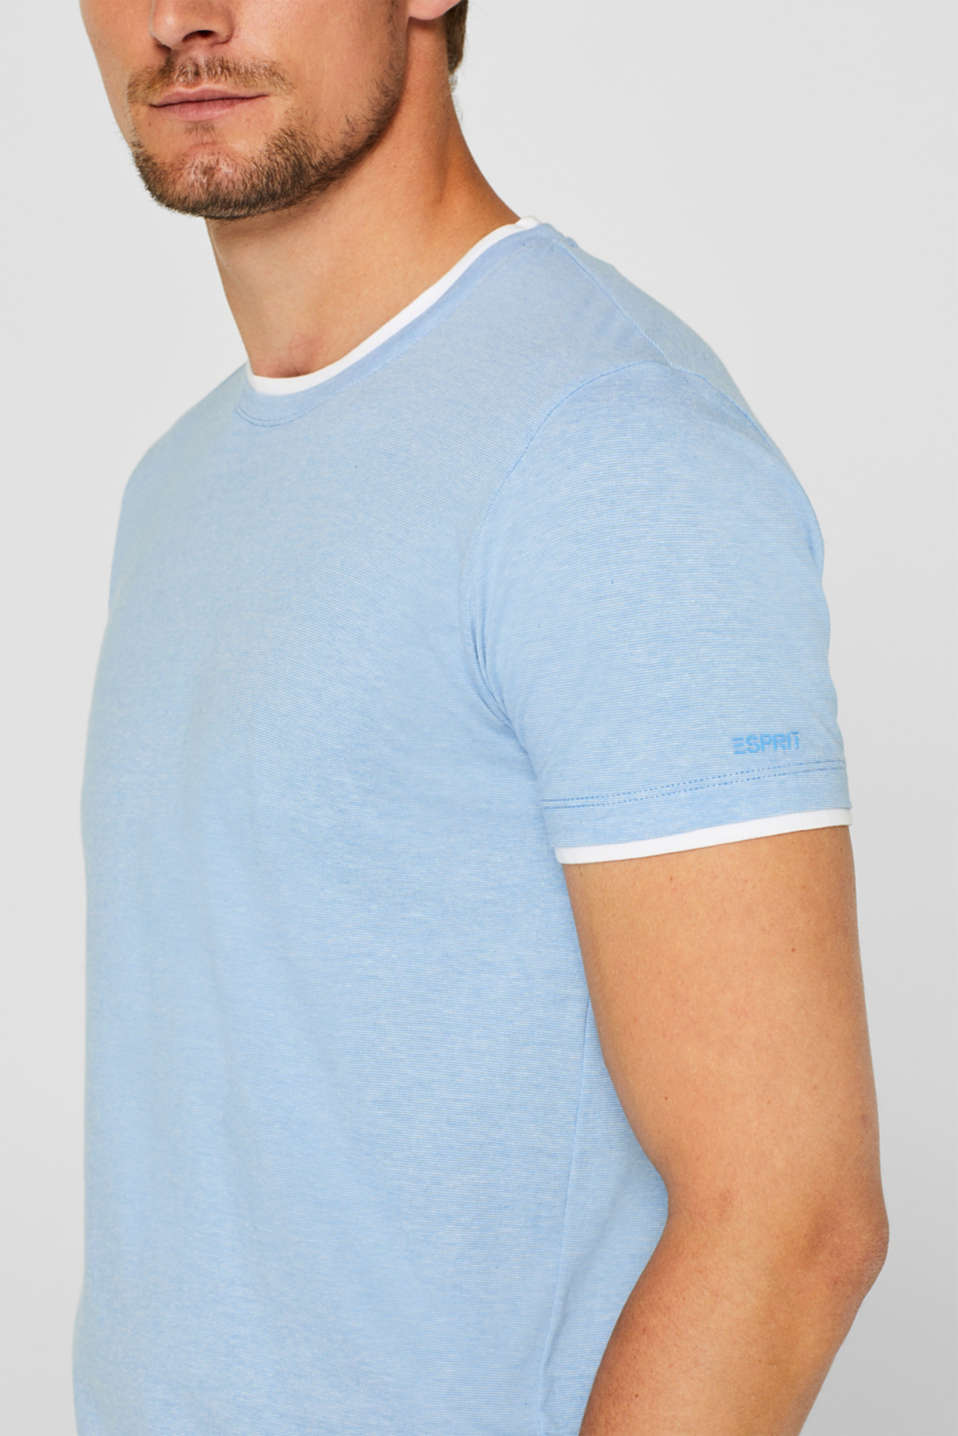 Layered top in jersey, 100% cotton, BRIGHT BLUE, detail image number 1